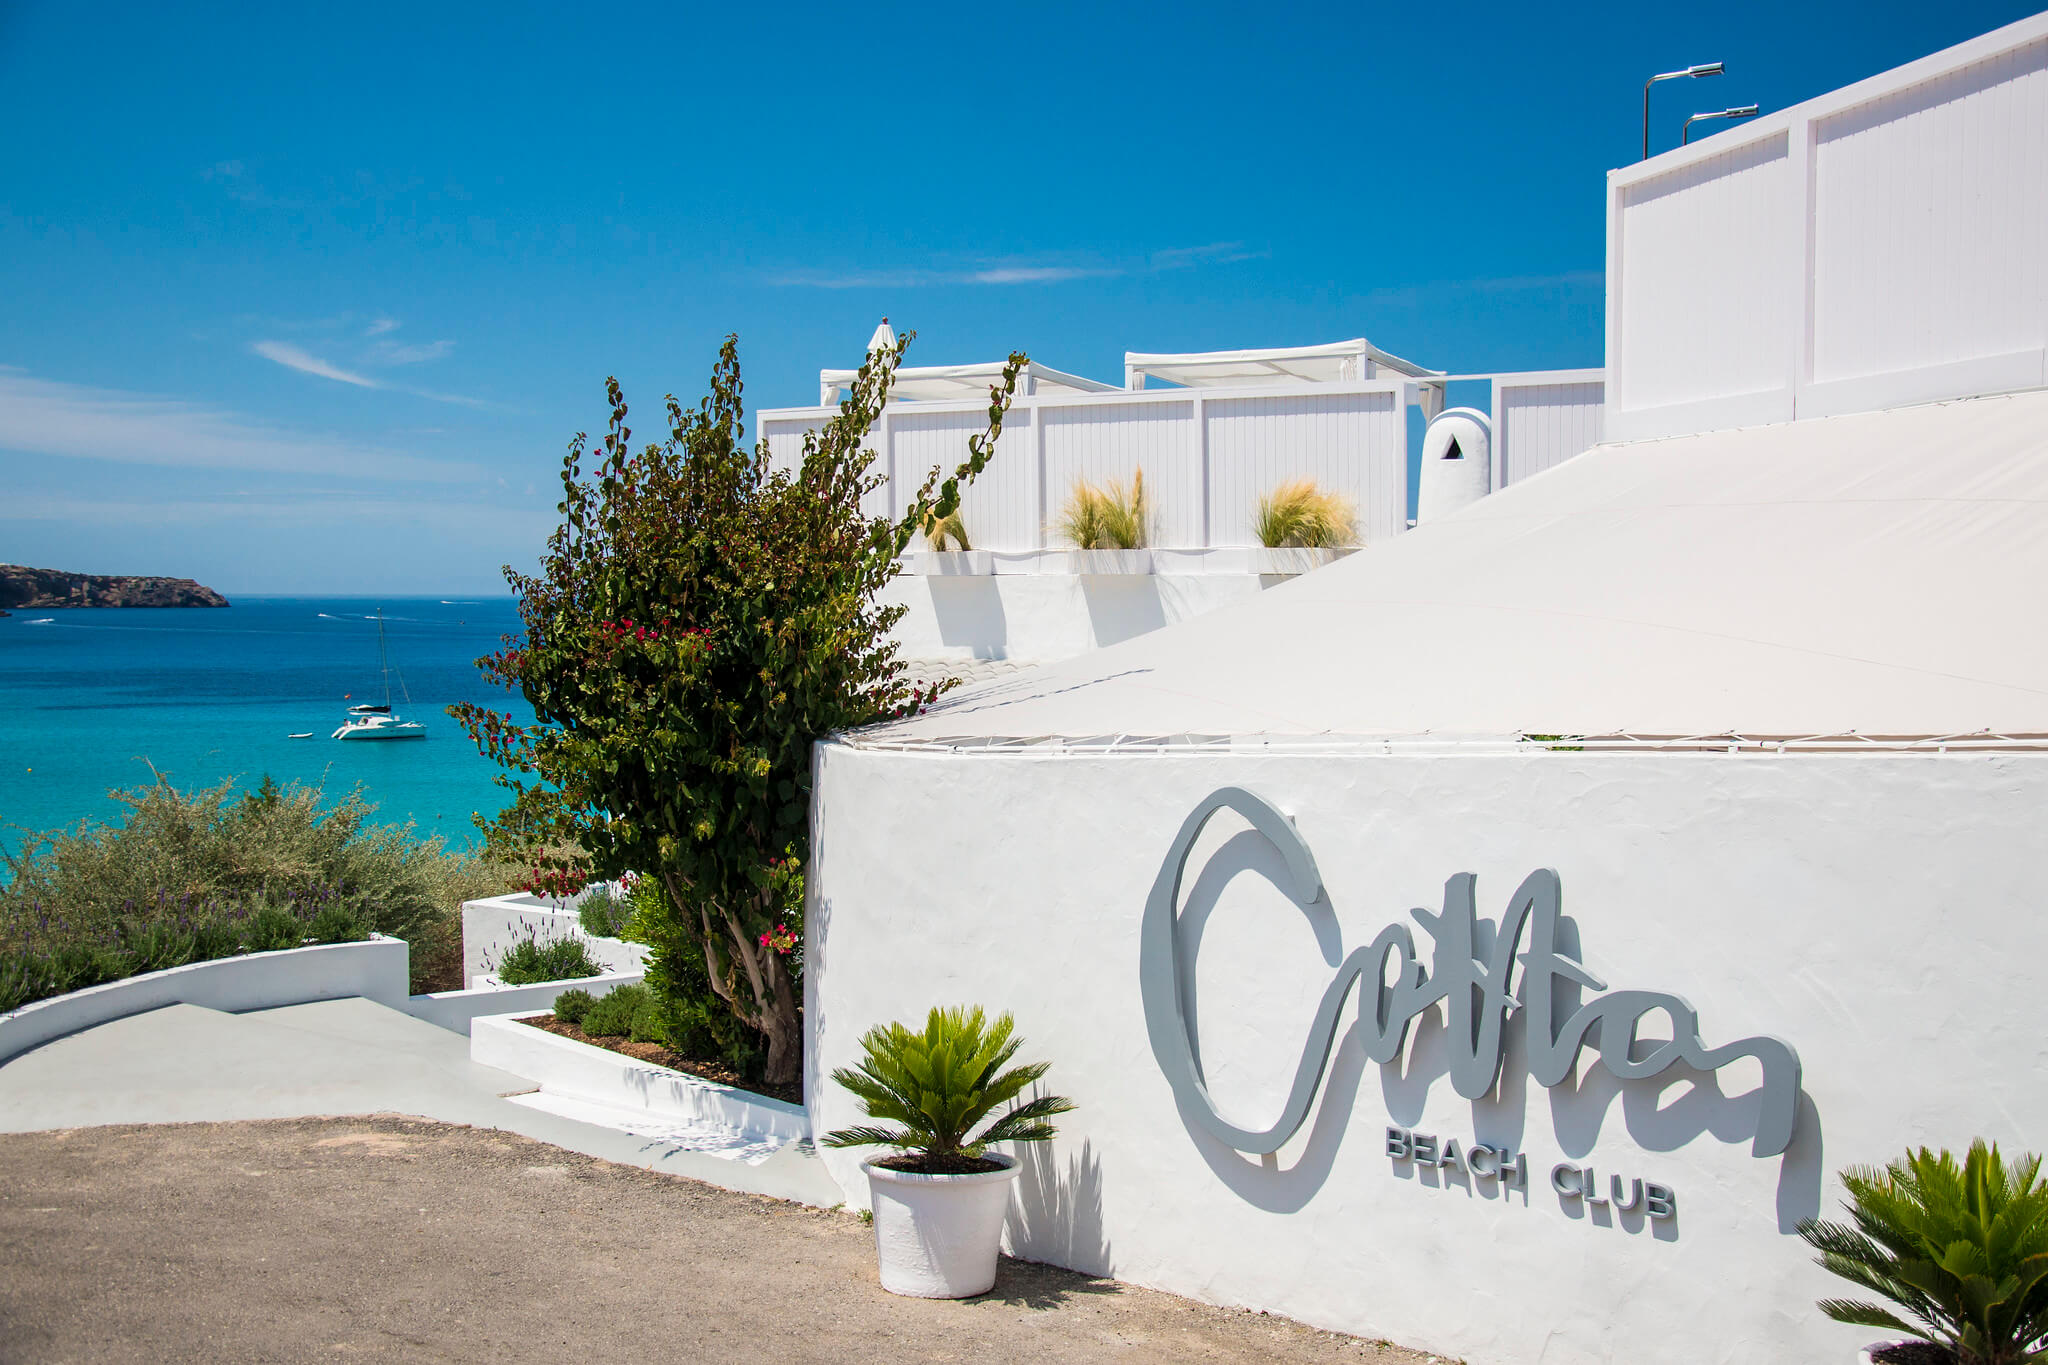 https://www.white-ibiza.com/wp-content/uploads/2020/03/ibiza-beach-restaurant-cotton-beach-club-2020-06.jpg